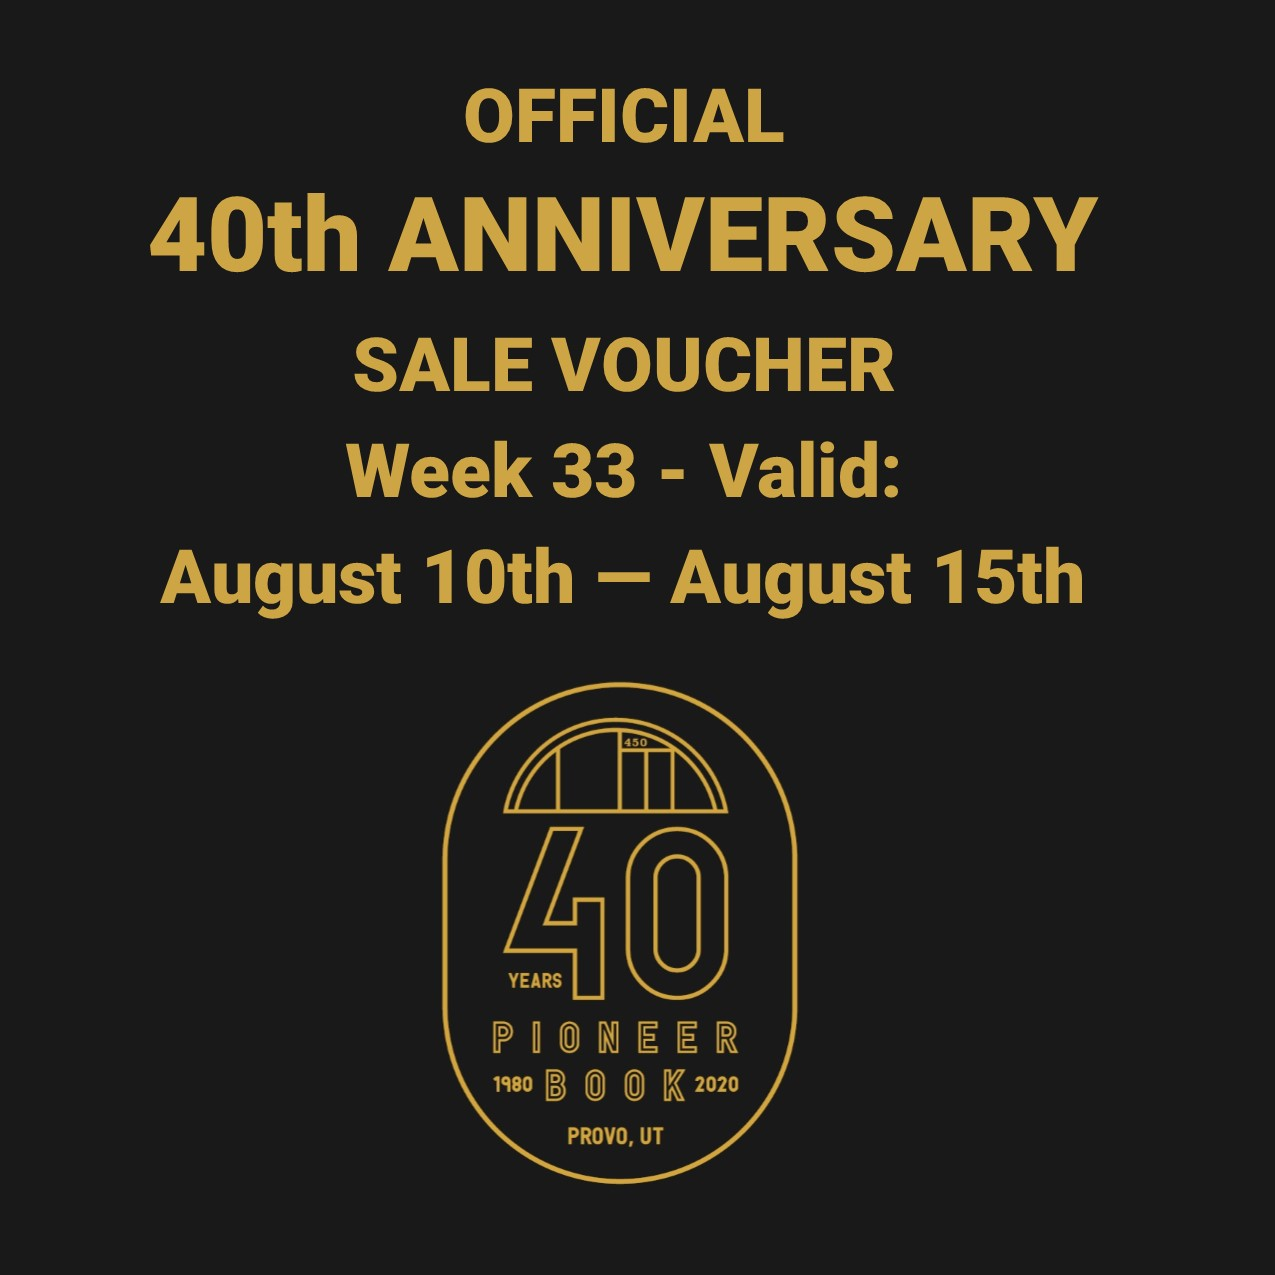 Image for 40th Anniversary Sale! Voucher - Week 33: August 10th - August 15th